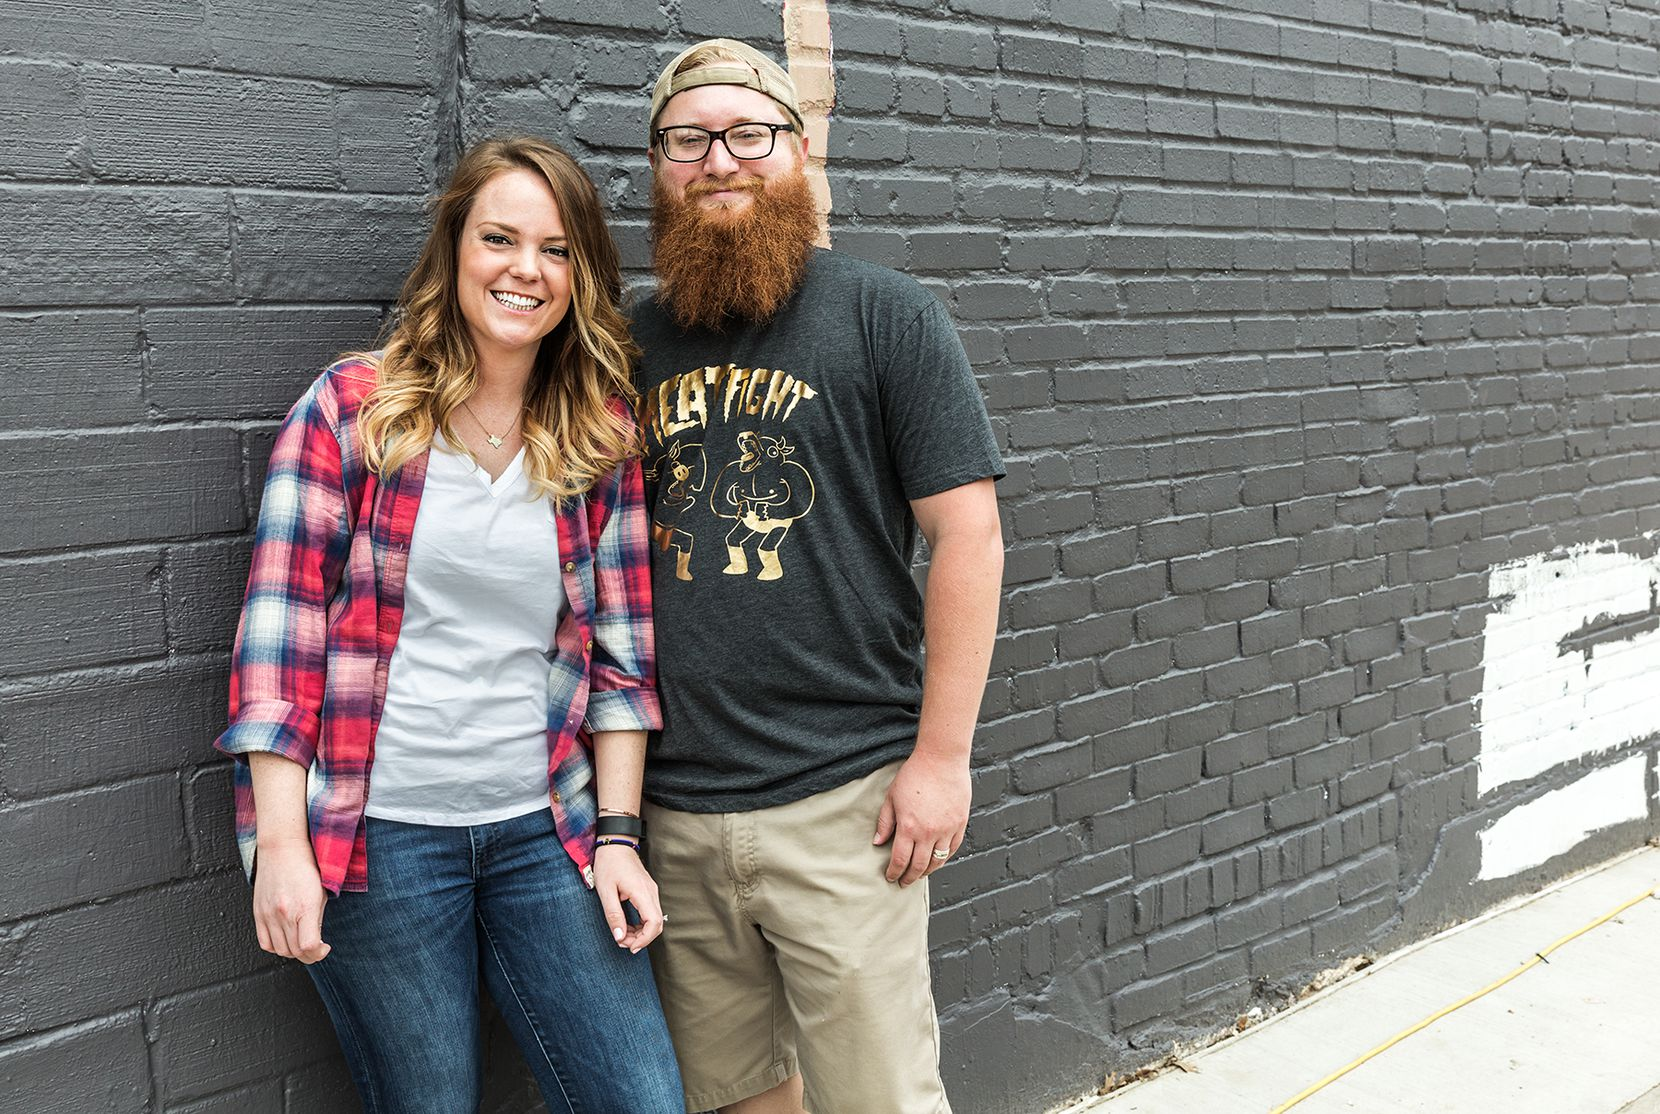 Emma and Travis Heim, 28 and 26, owners of Heim Barbecue and Catering